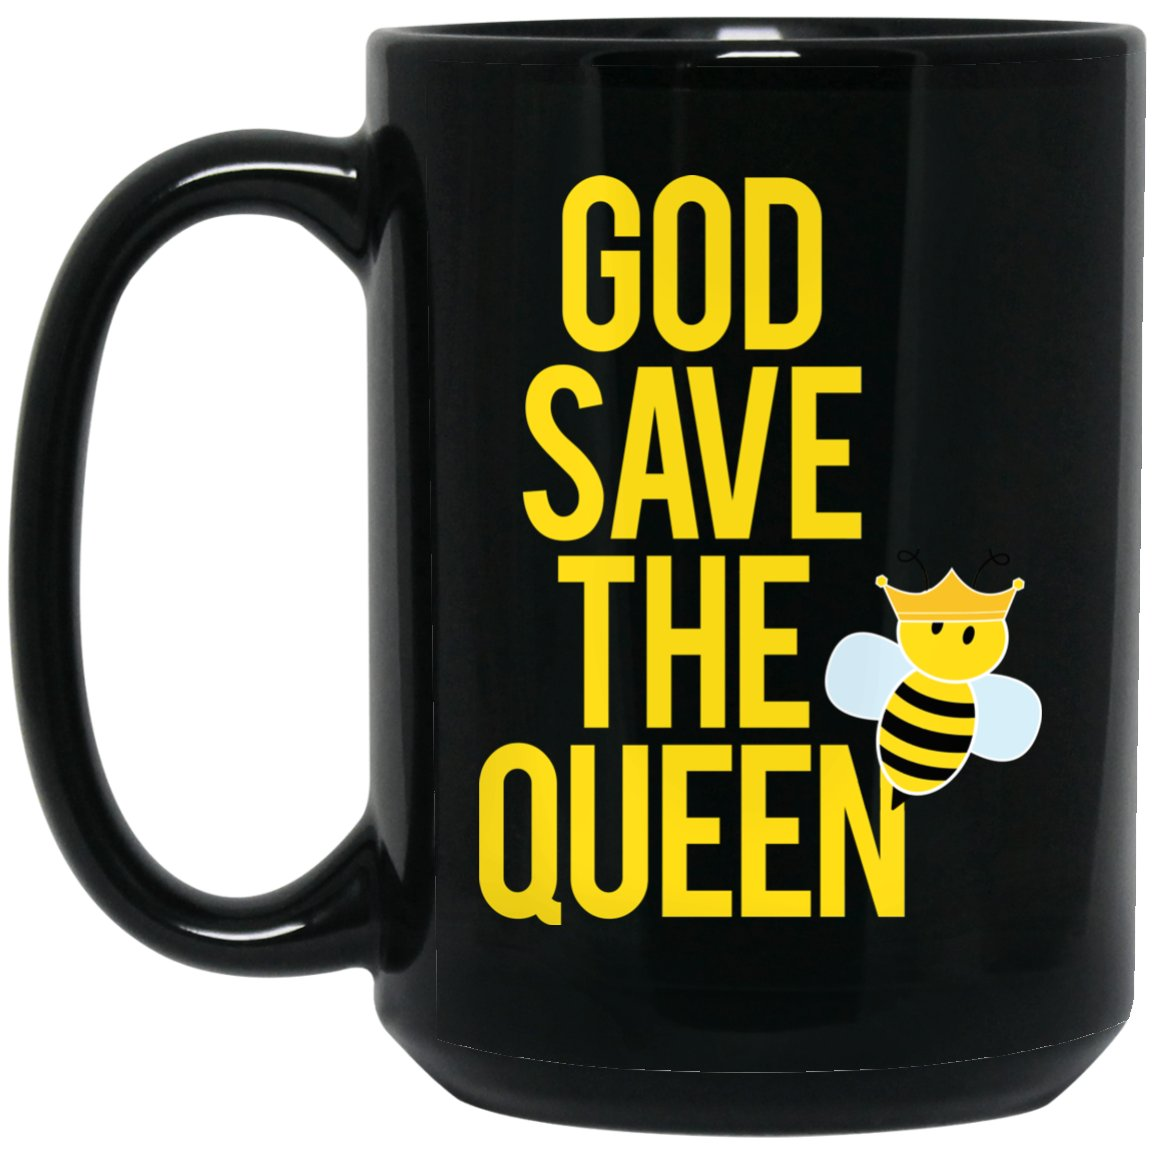 Beekeeper Gift God save the queen Large Black Mug